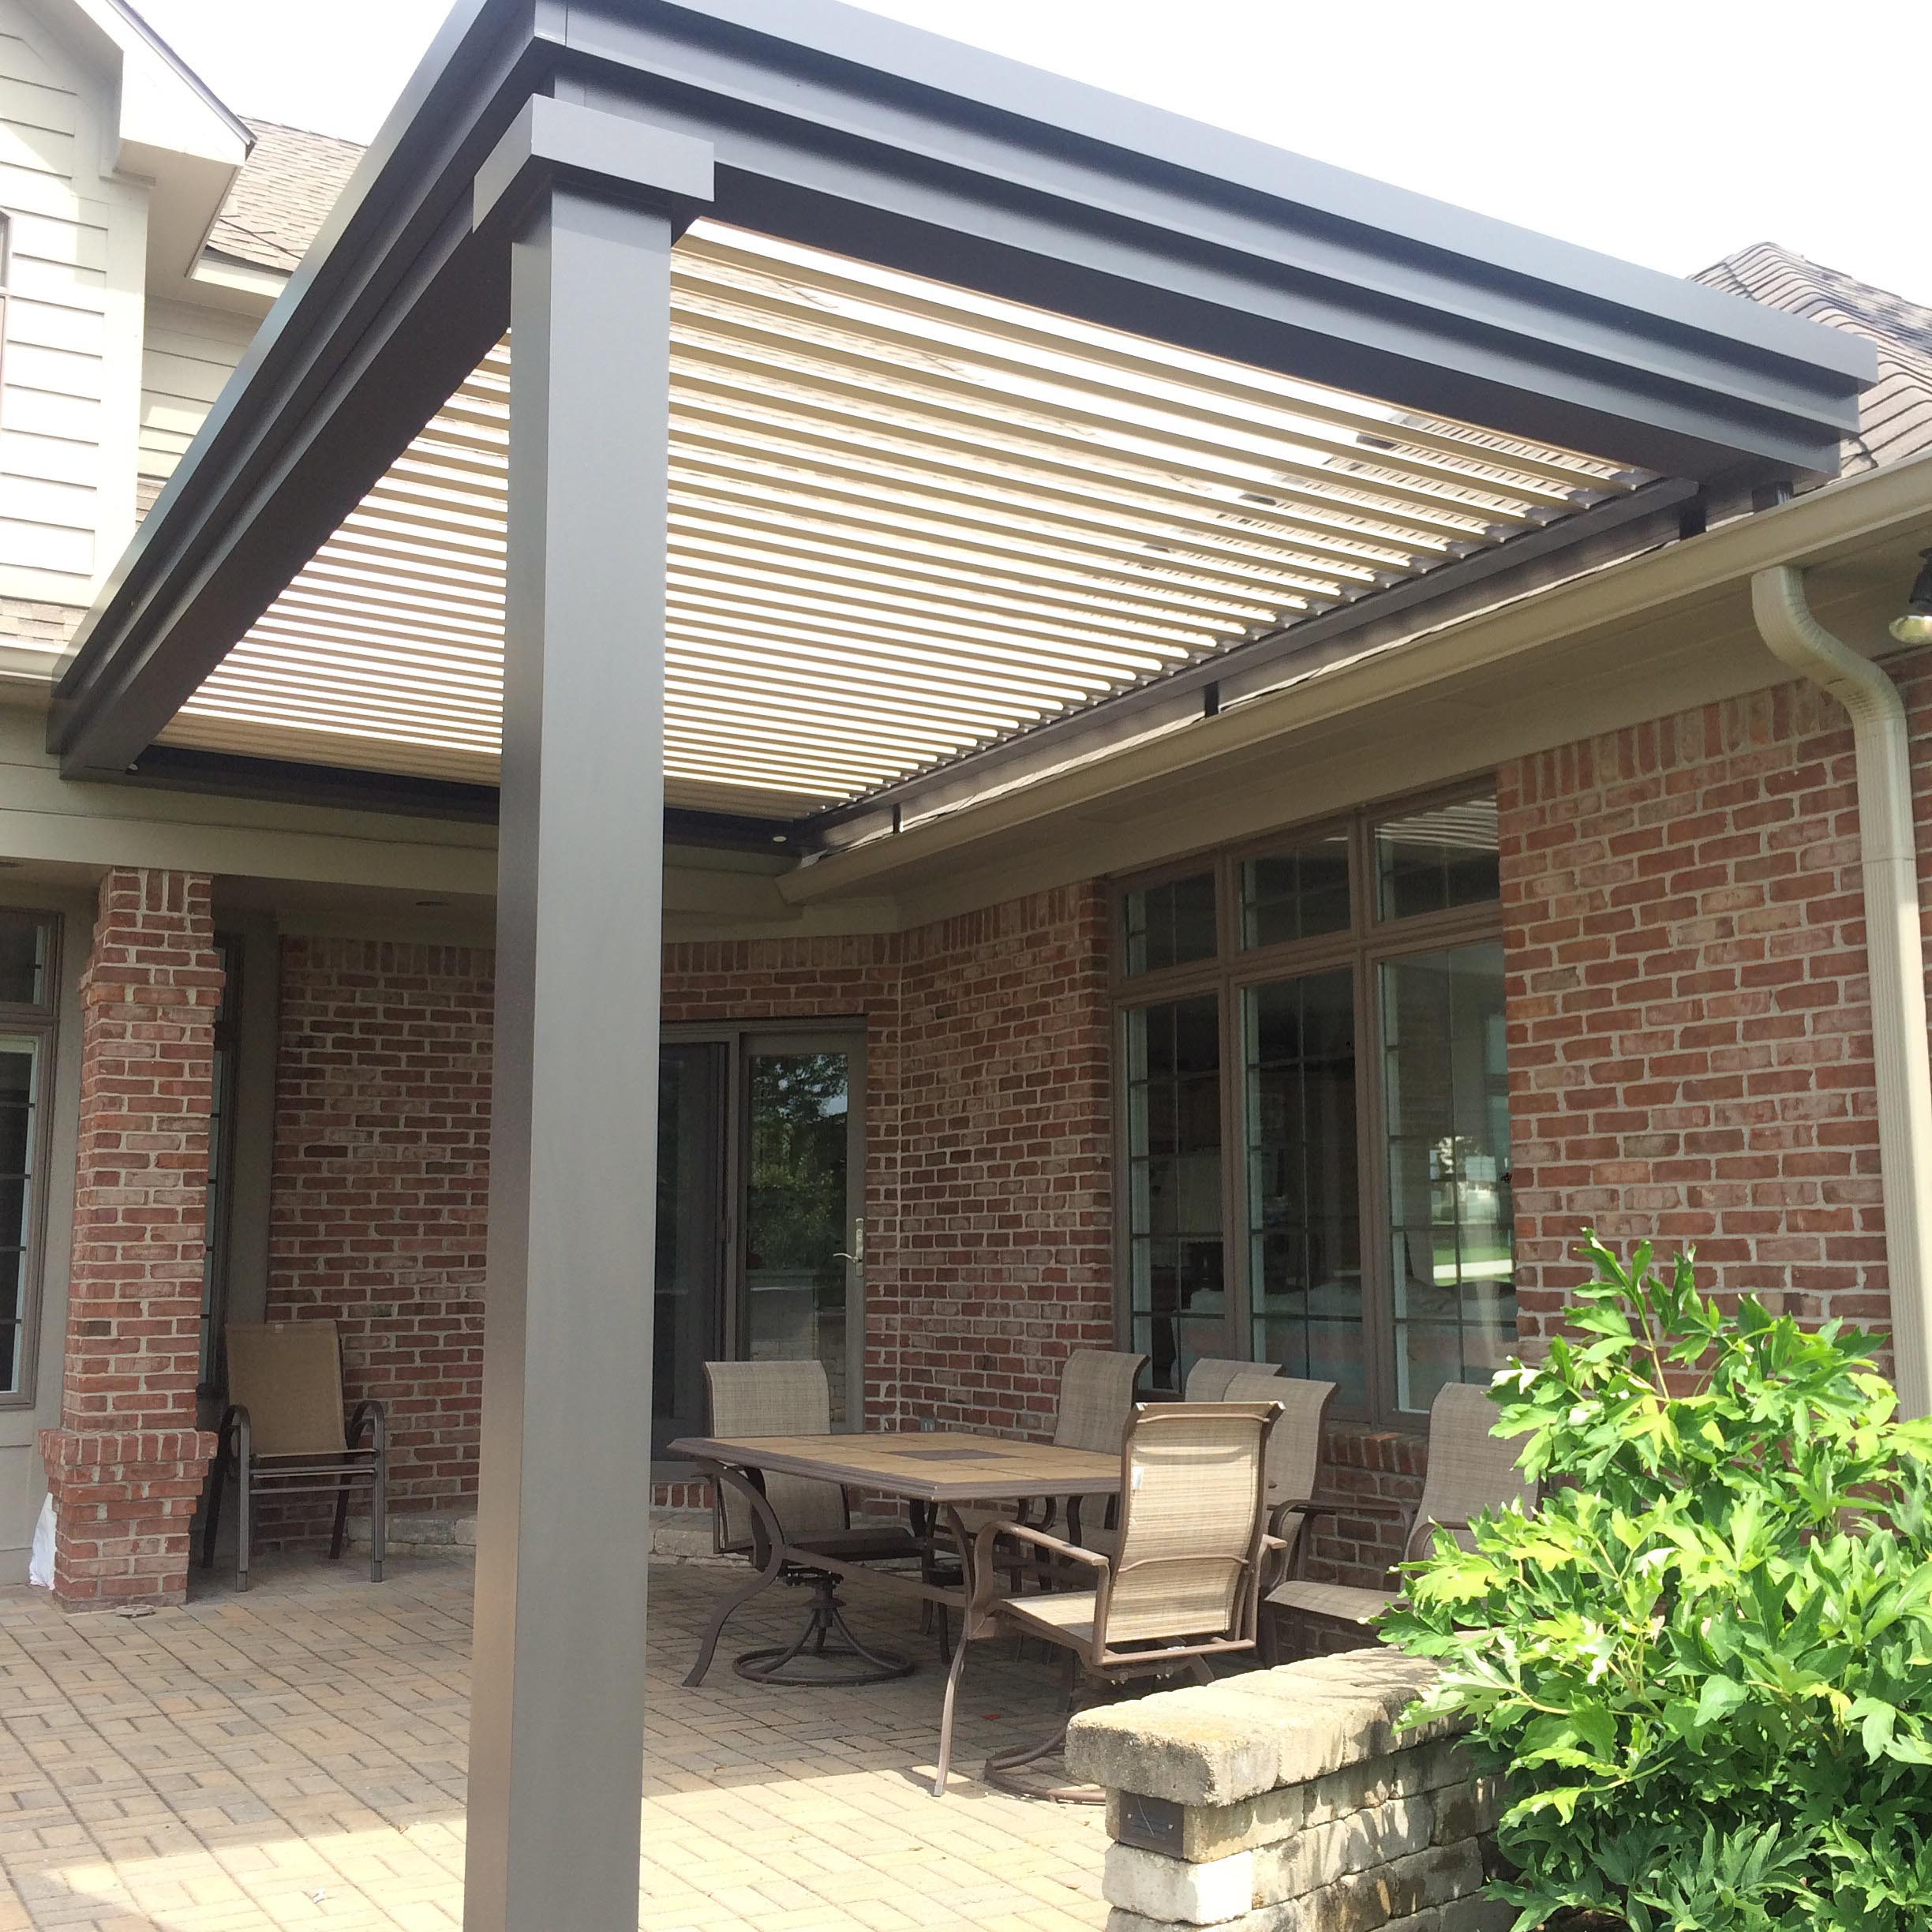 Crawfordsville, IN - Pario cover - Attached and roof mount